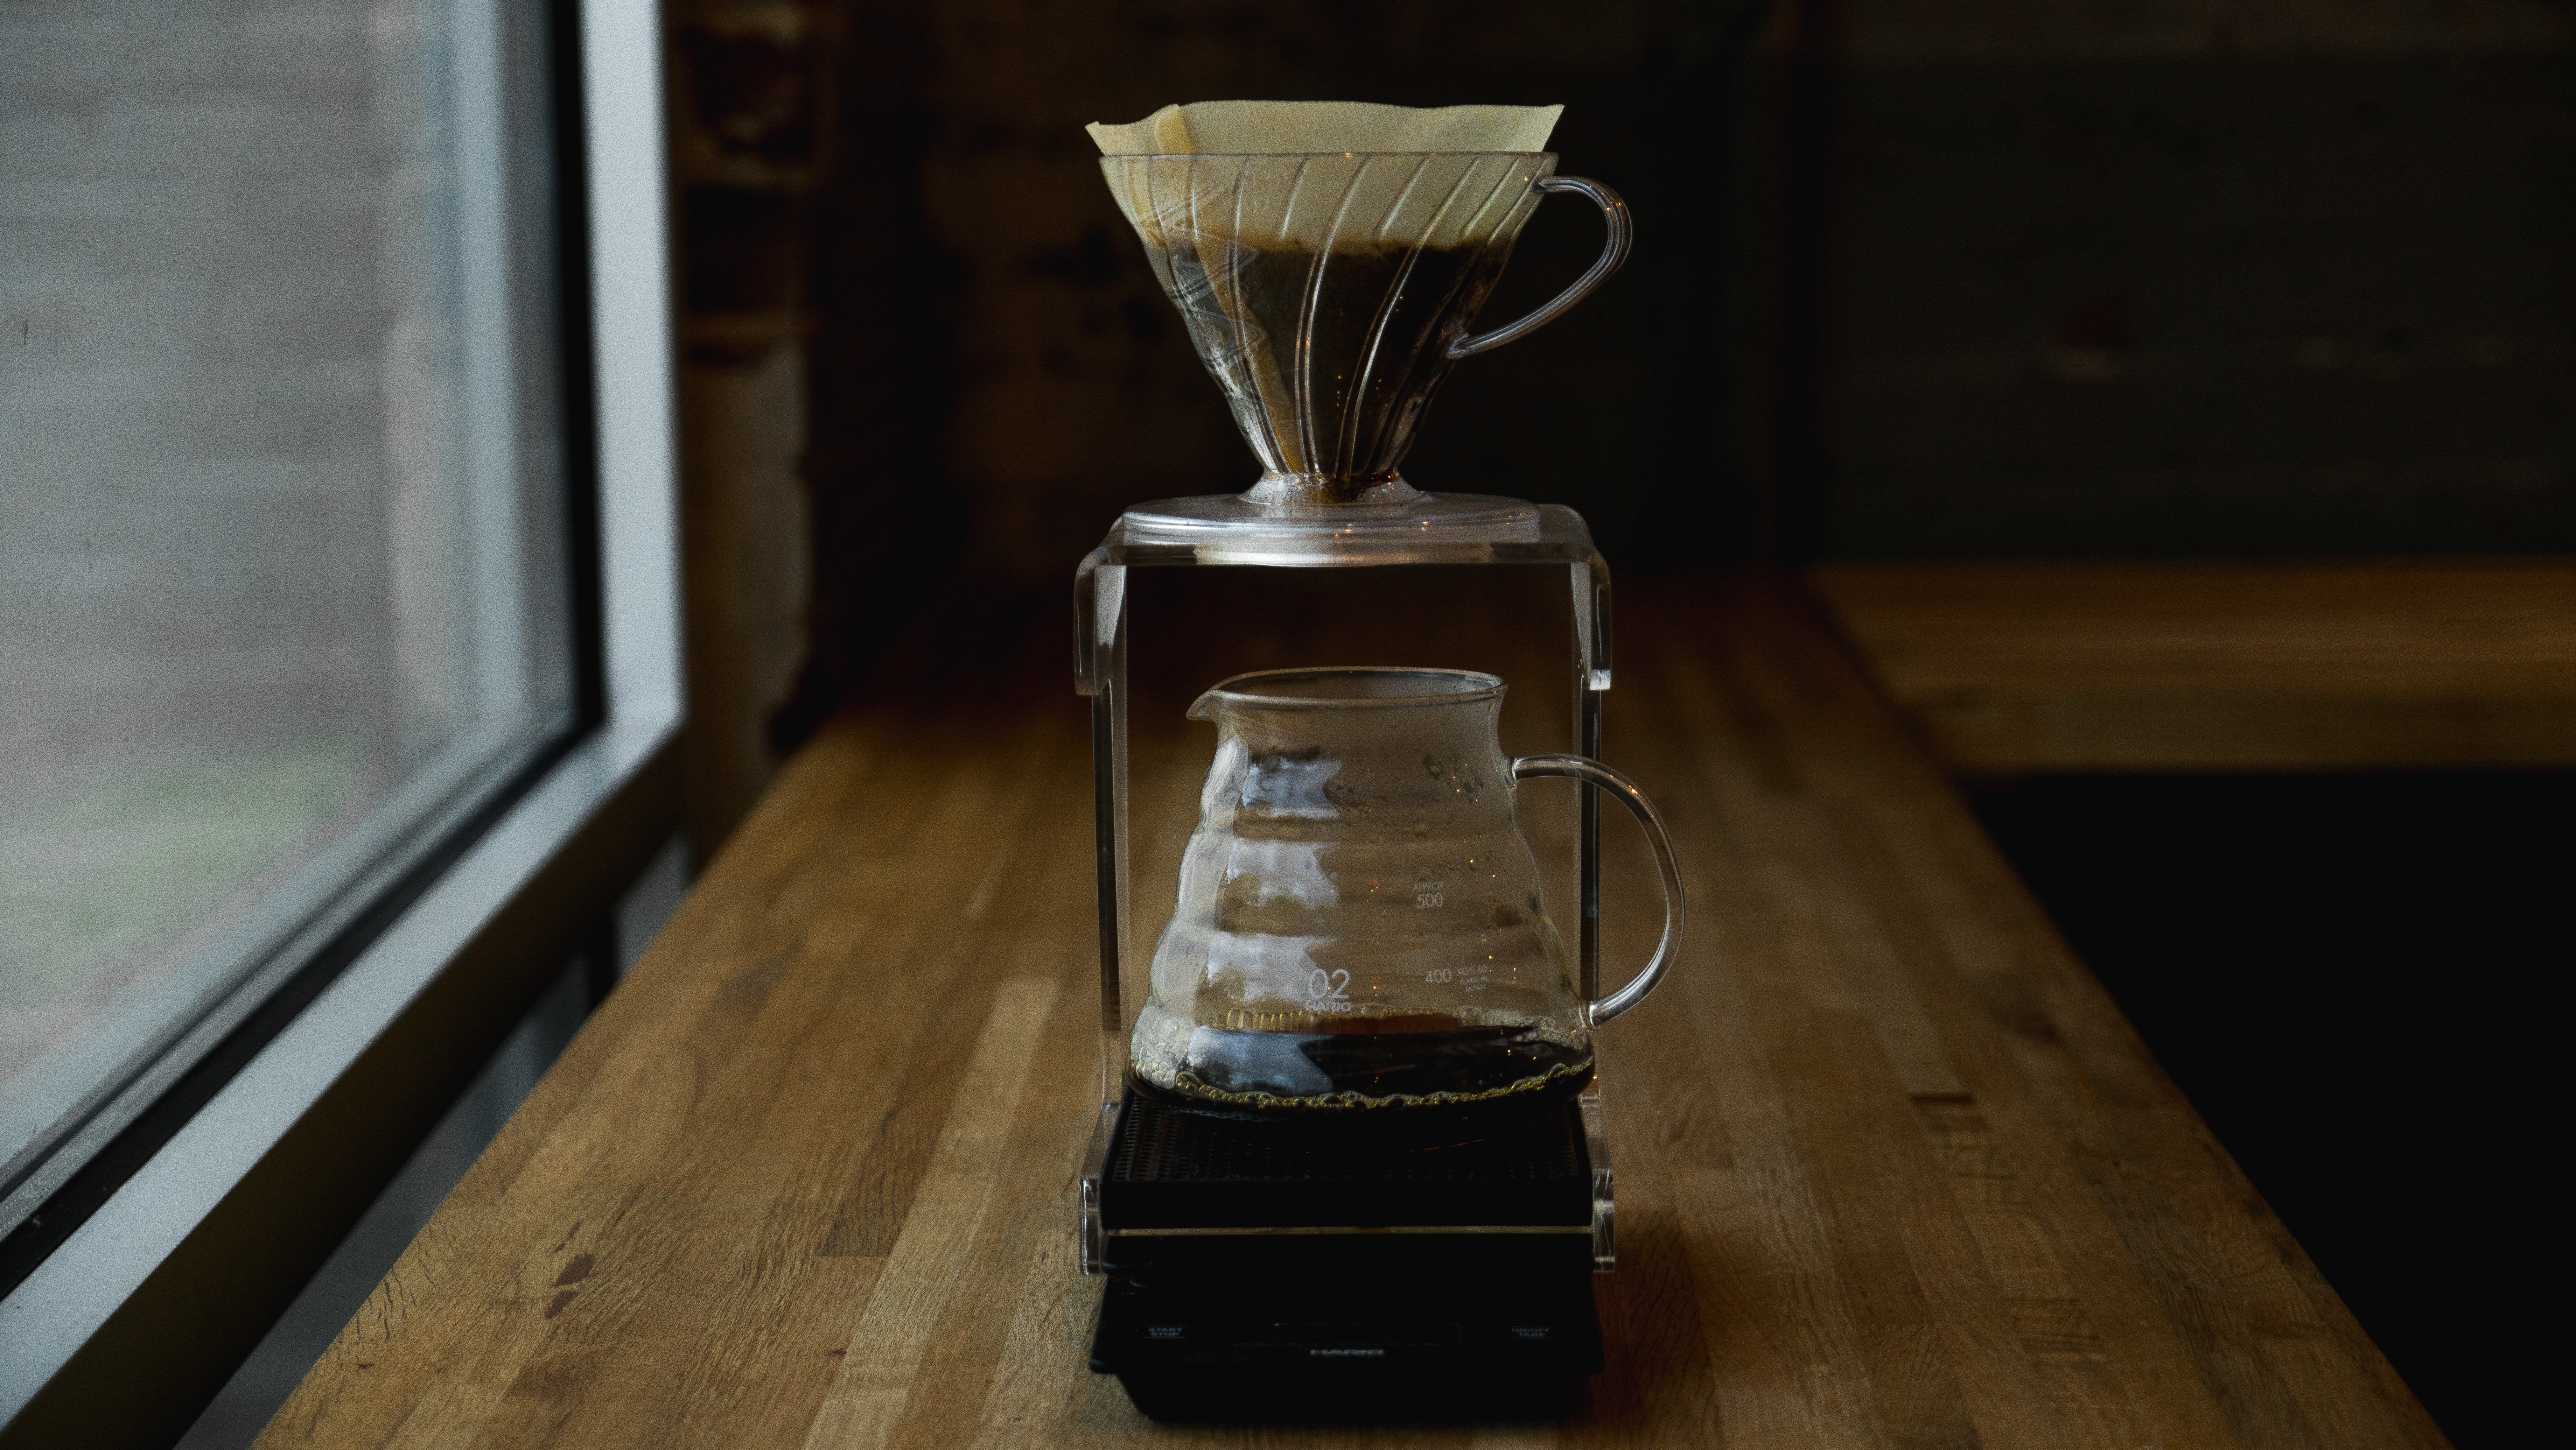 A pourover sits atop a glass decanter full of hot coffee on a wooden table in front of a window.